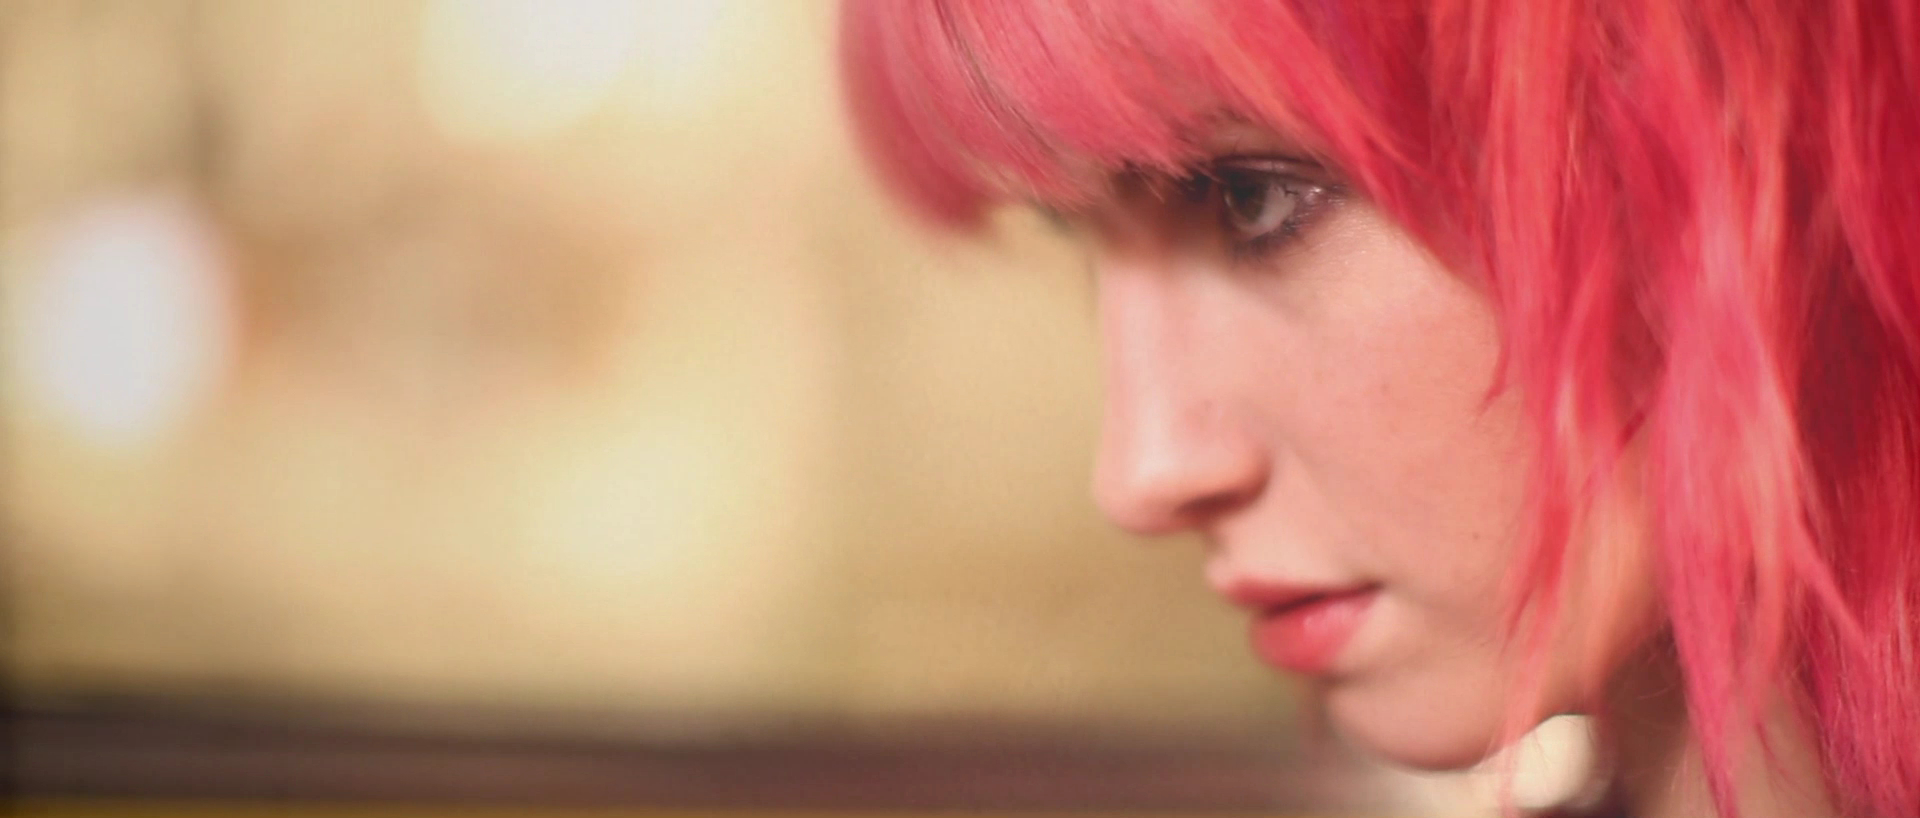 hayley Williams paramore Women HD Wallpaper